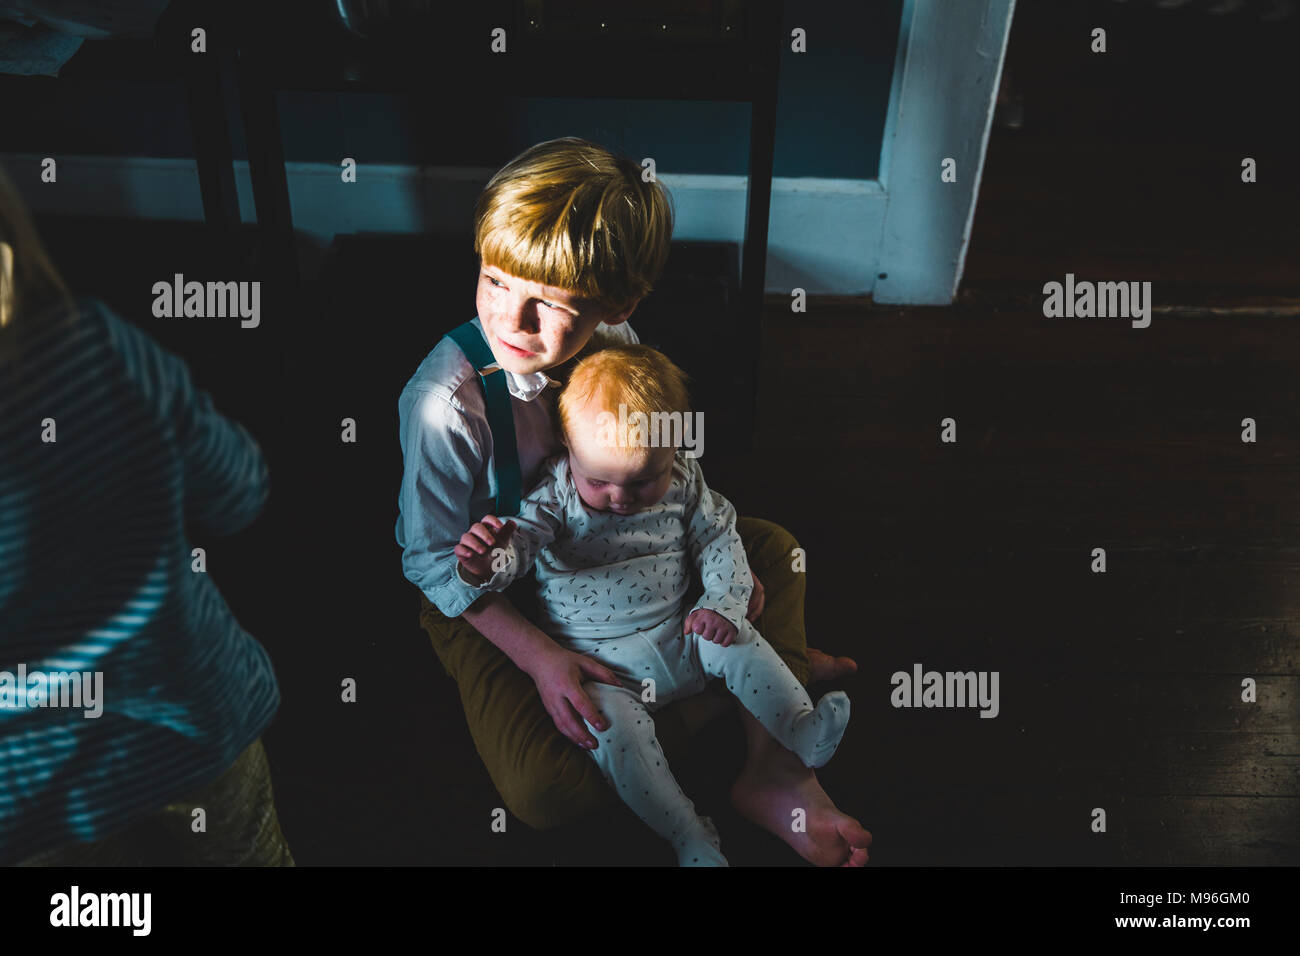 Baby sitting on boy's lap - Stock Image